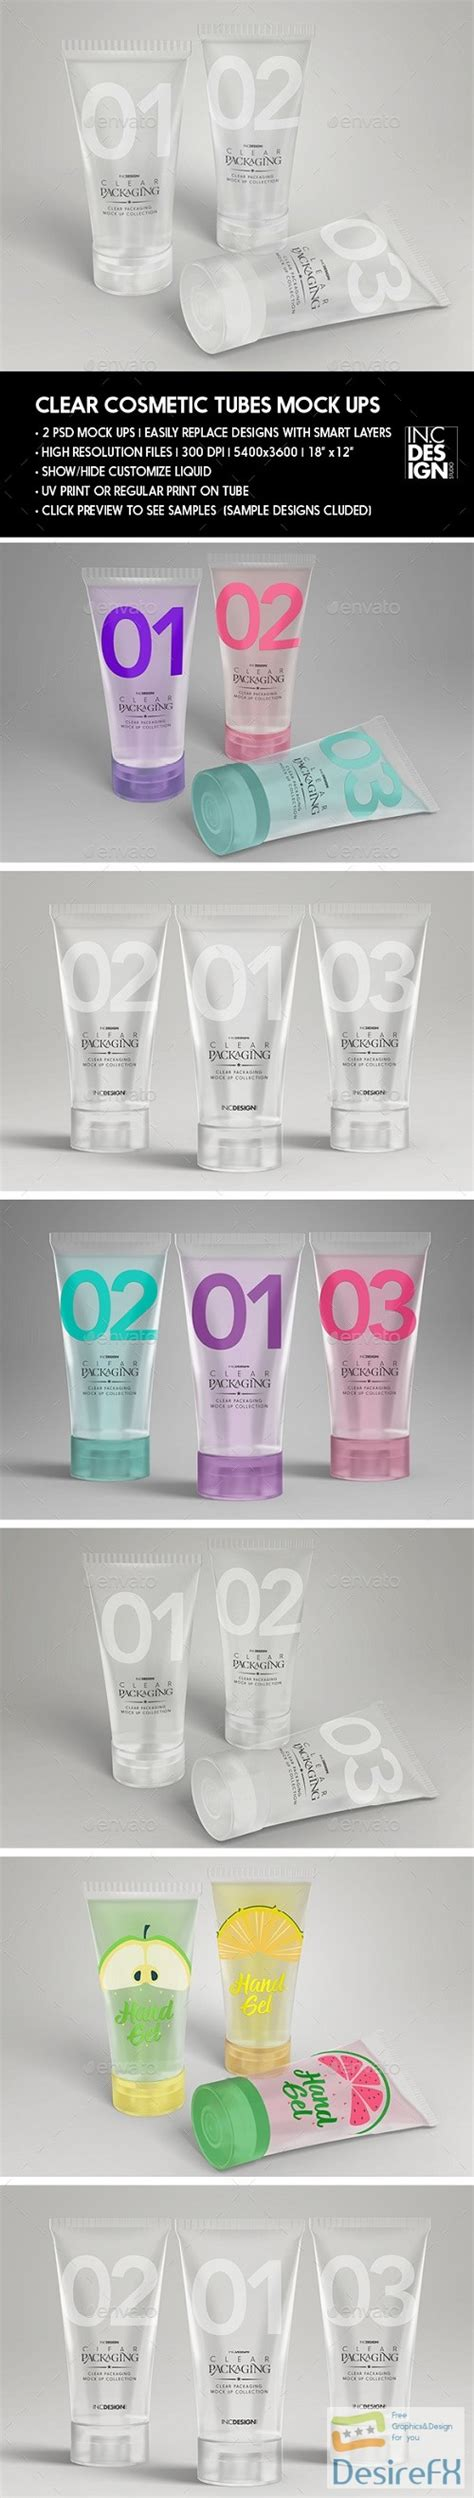 Contains special layers and smart objects for your work. Desirefx.com | Download Clear Cosmetic Tube MockUps 20753300